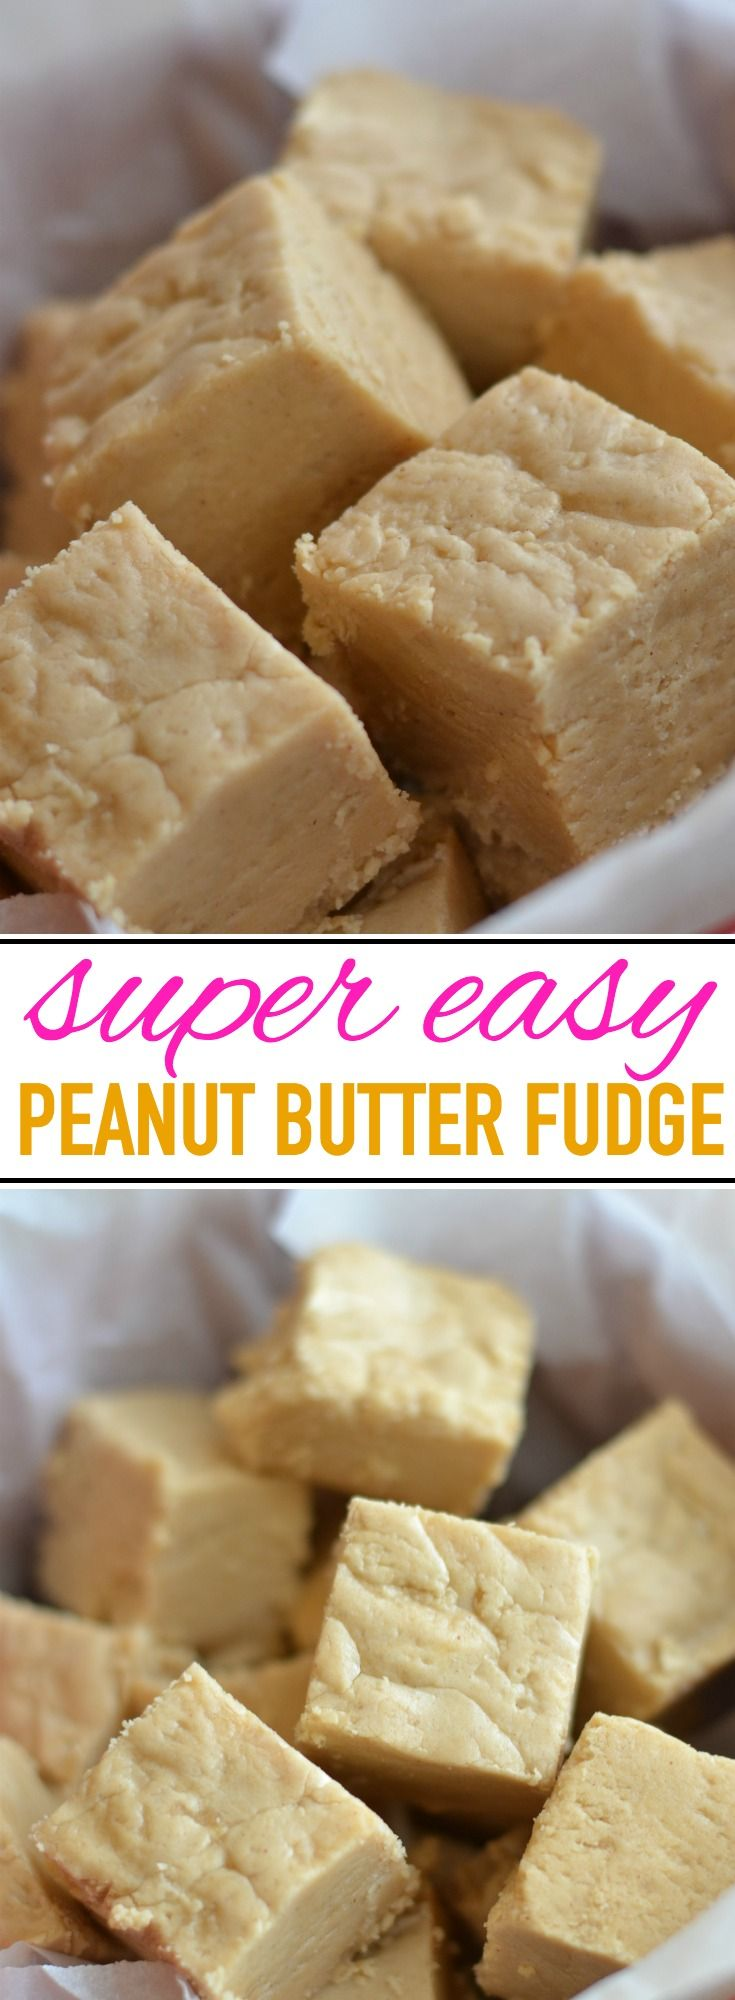 Delicious and easy peanut butter fudge recipe, passed down for generations!